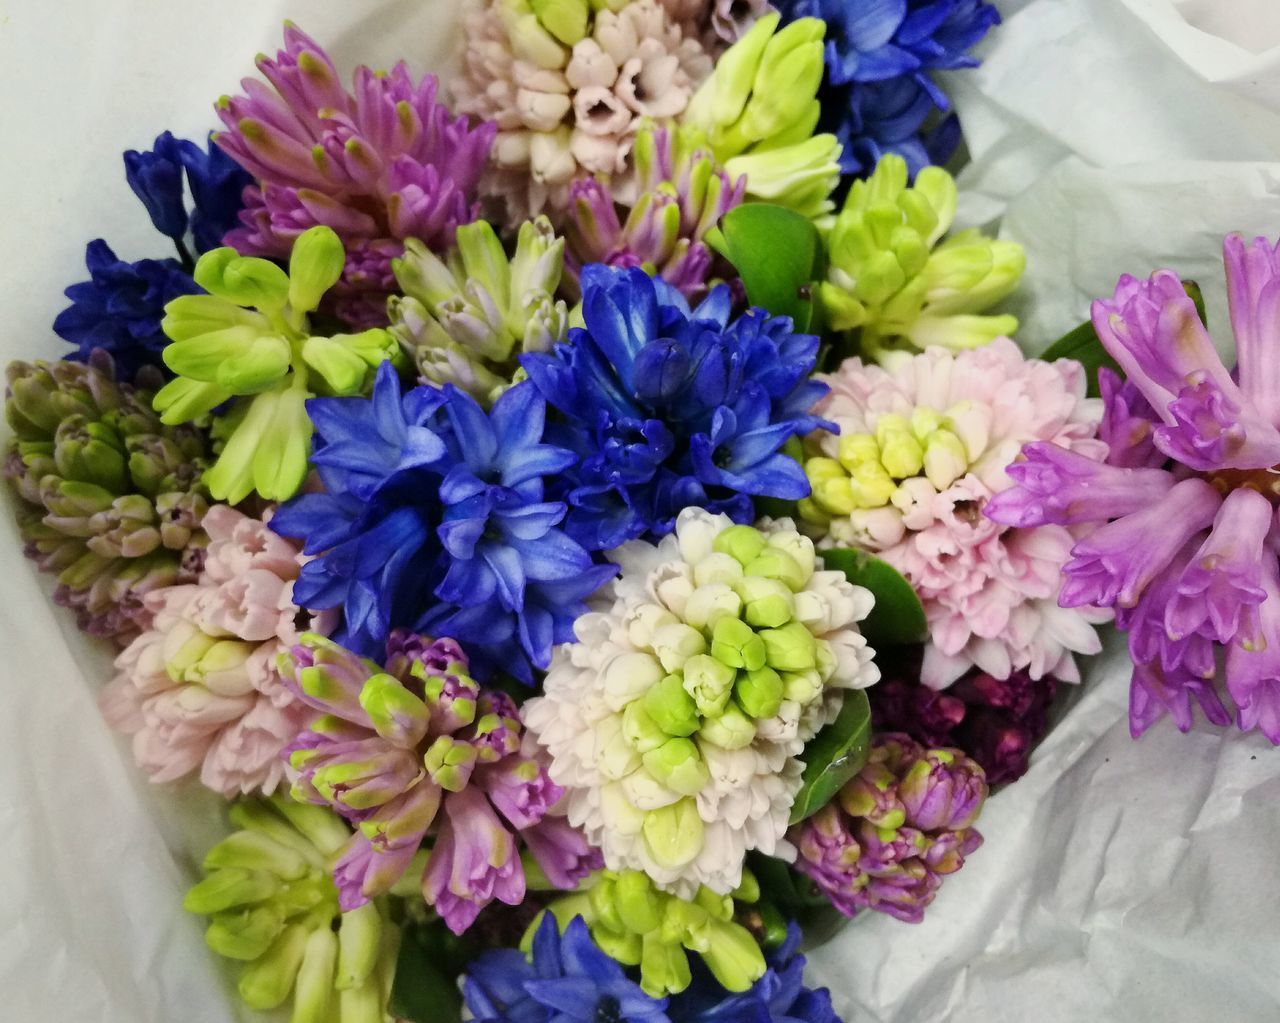 Flower Freshness Fragility No People Hyacinth Multi Colored Beauty In Nature Nature Flowers Hyacinths Hyacinth Flower EyeEm Diversity